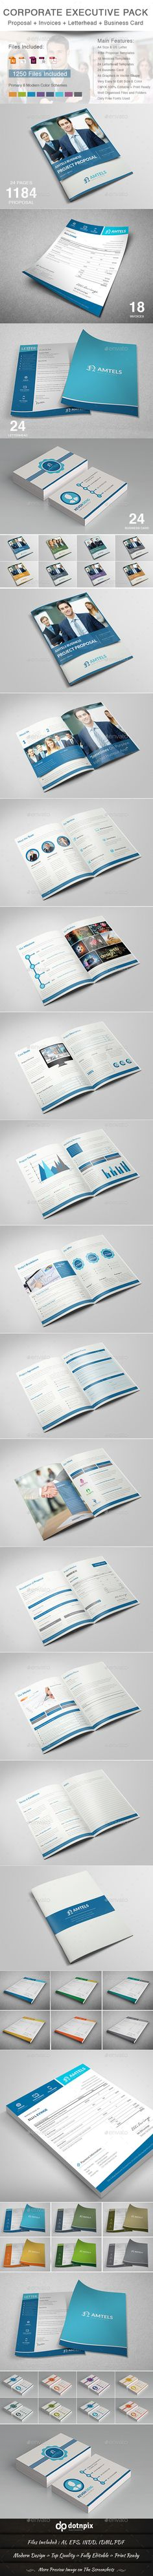 Corporate Executive Pack — Vector EPS #stationery business pack #print template • Available here → https://graphicriver.net/item/corporate-executive-pack/11123008?ref=pxcr